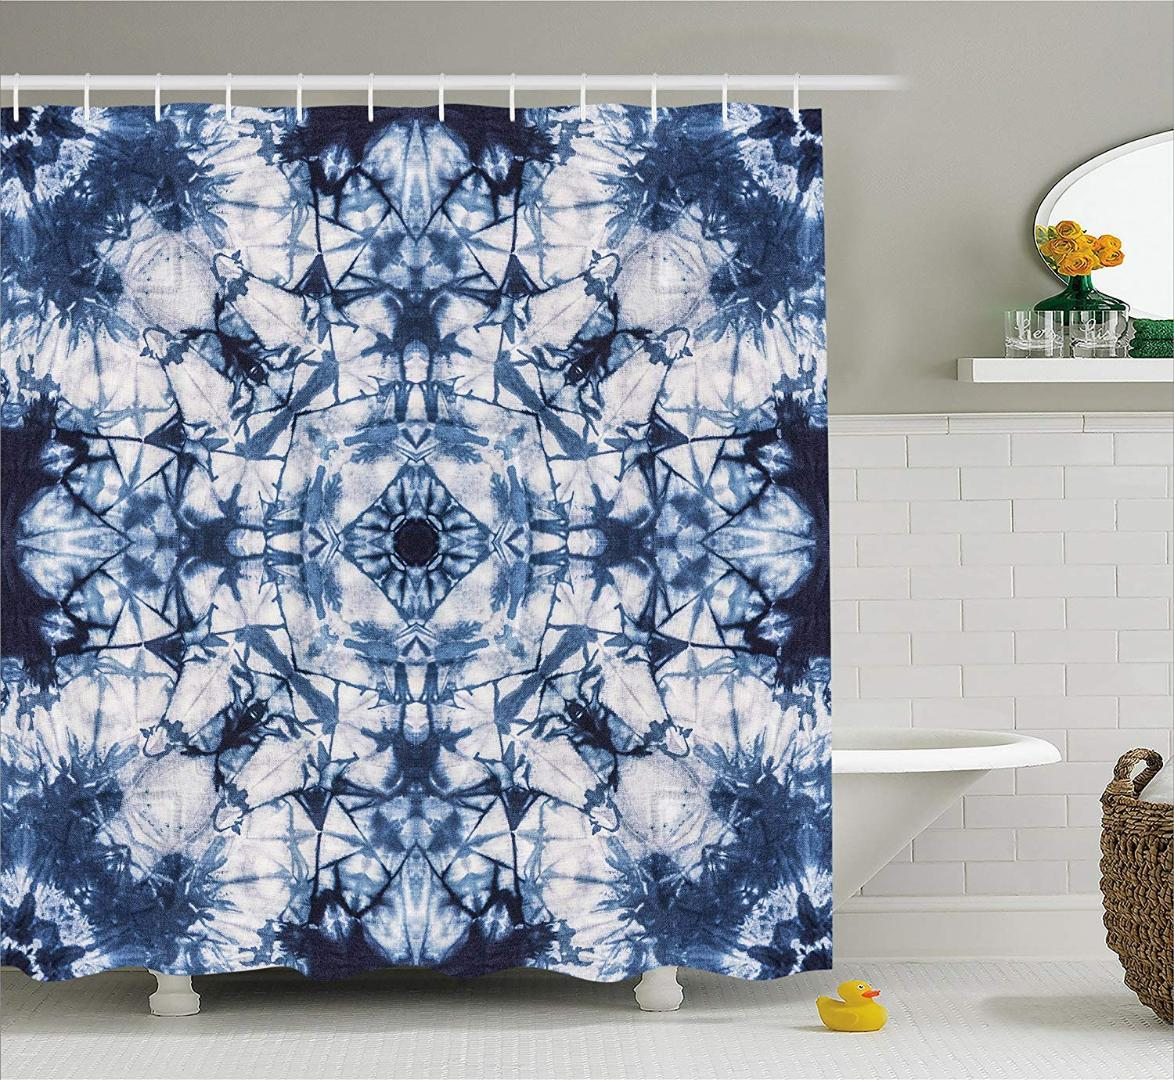 Tie Dye Decor Shower Curtain Old Fashion Kaleidoscope Loose Unfold Motley Pattern With Inner Outer Layers Fabric Bathroom Curtains Cheap